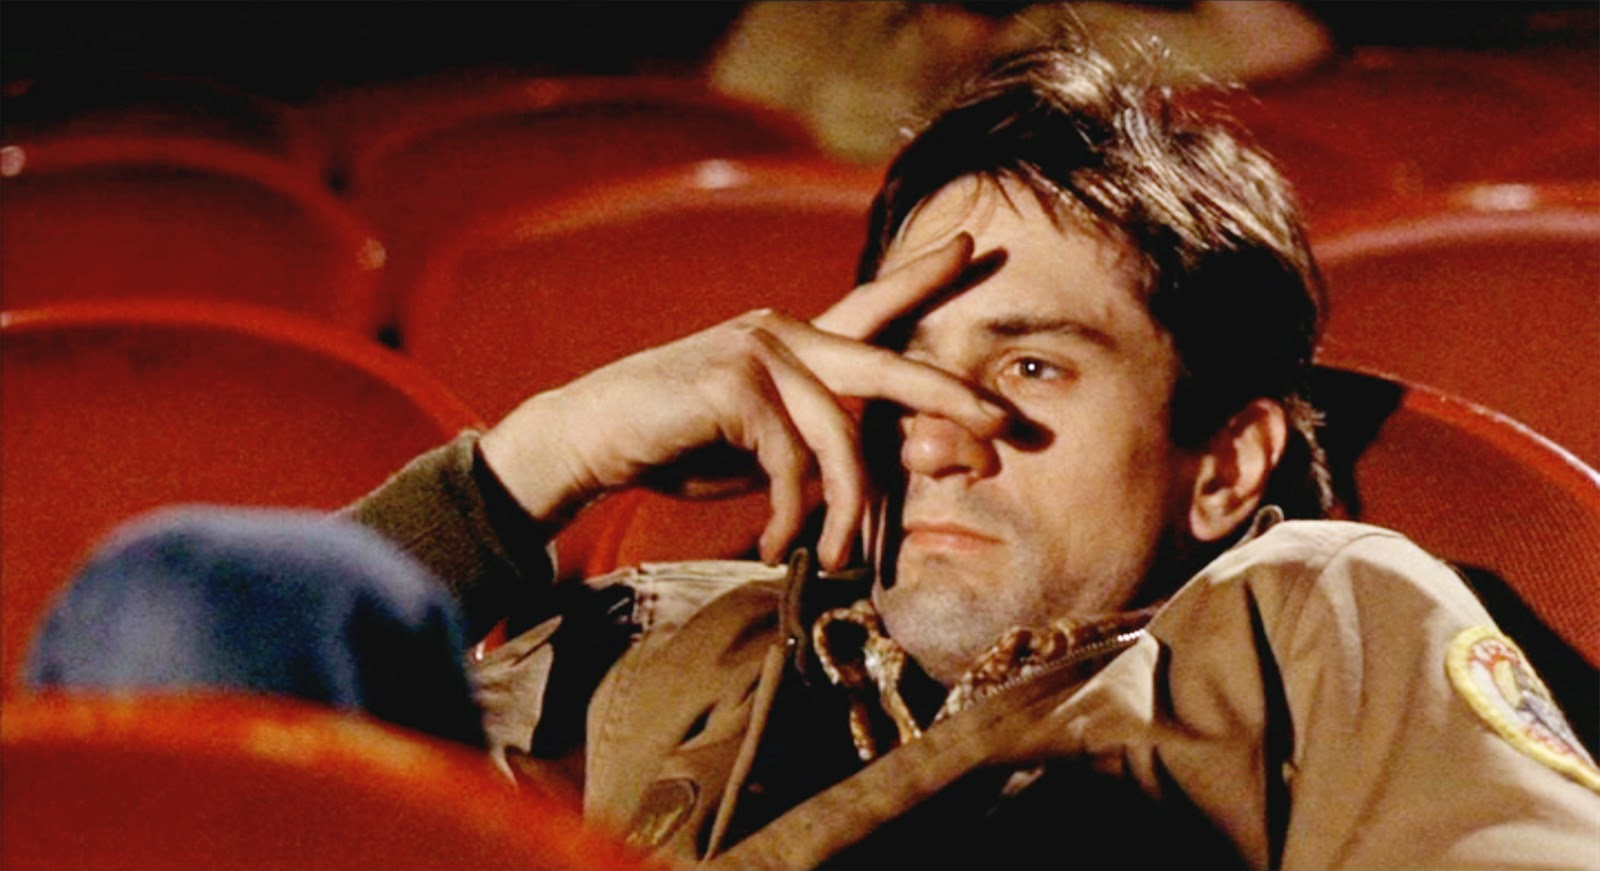 theater alone, movies/tv, Taxi Driver